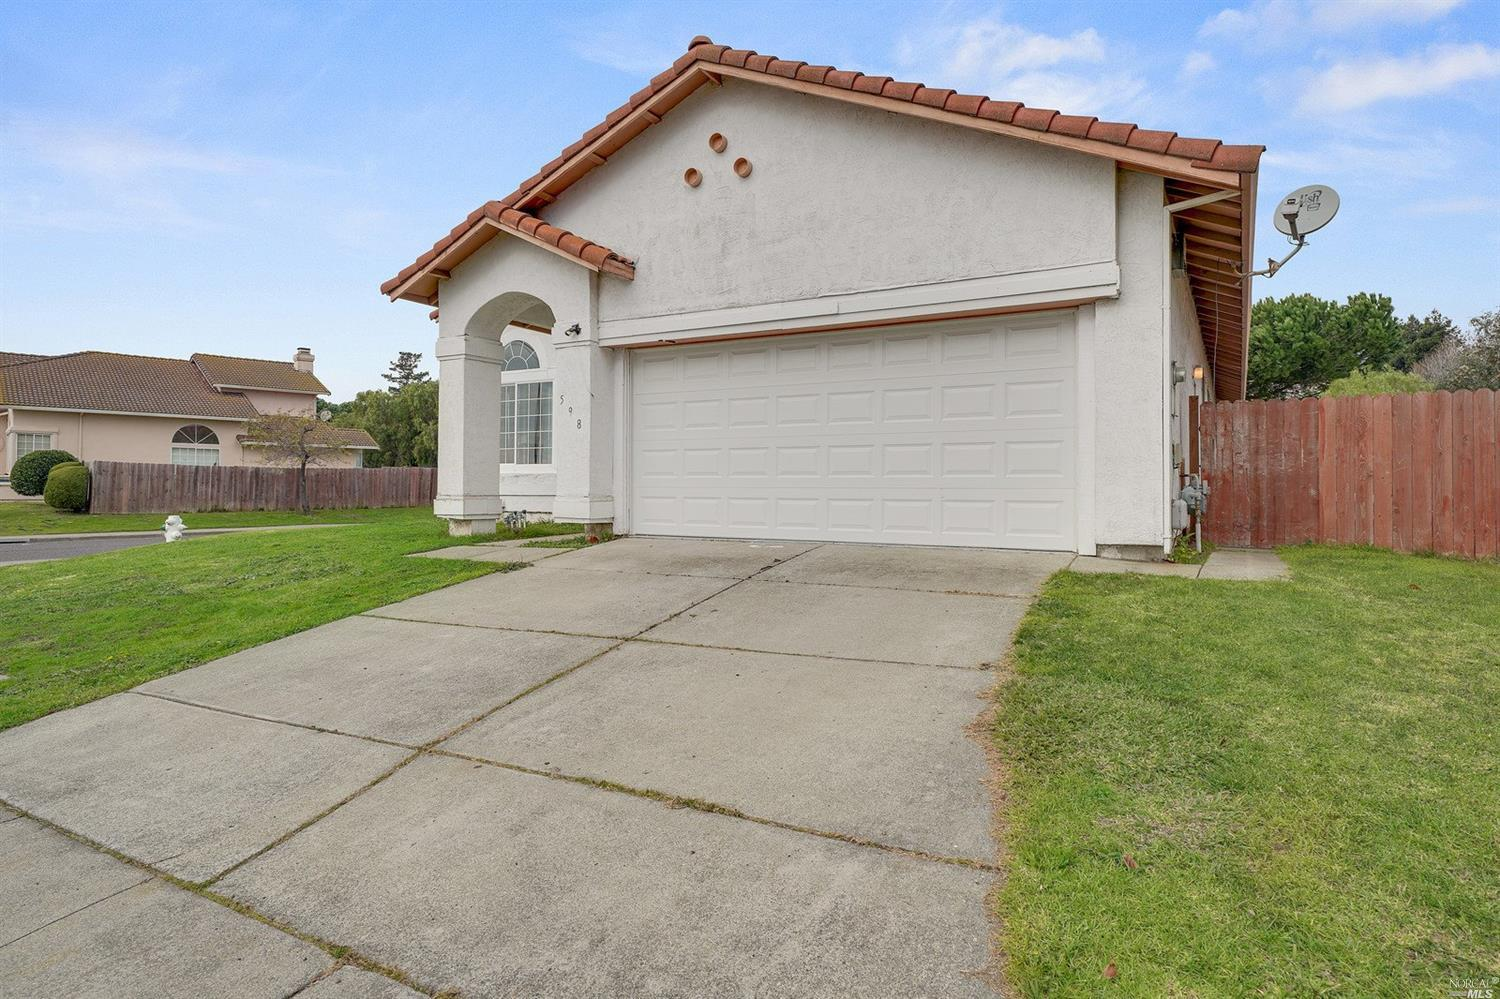 Location.. Location..  Location.  This home is located on the boarder of American Canyon and Vallejo